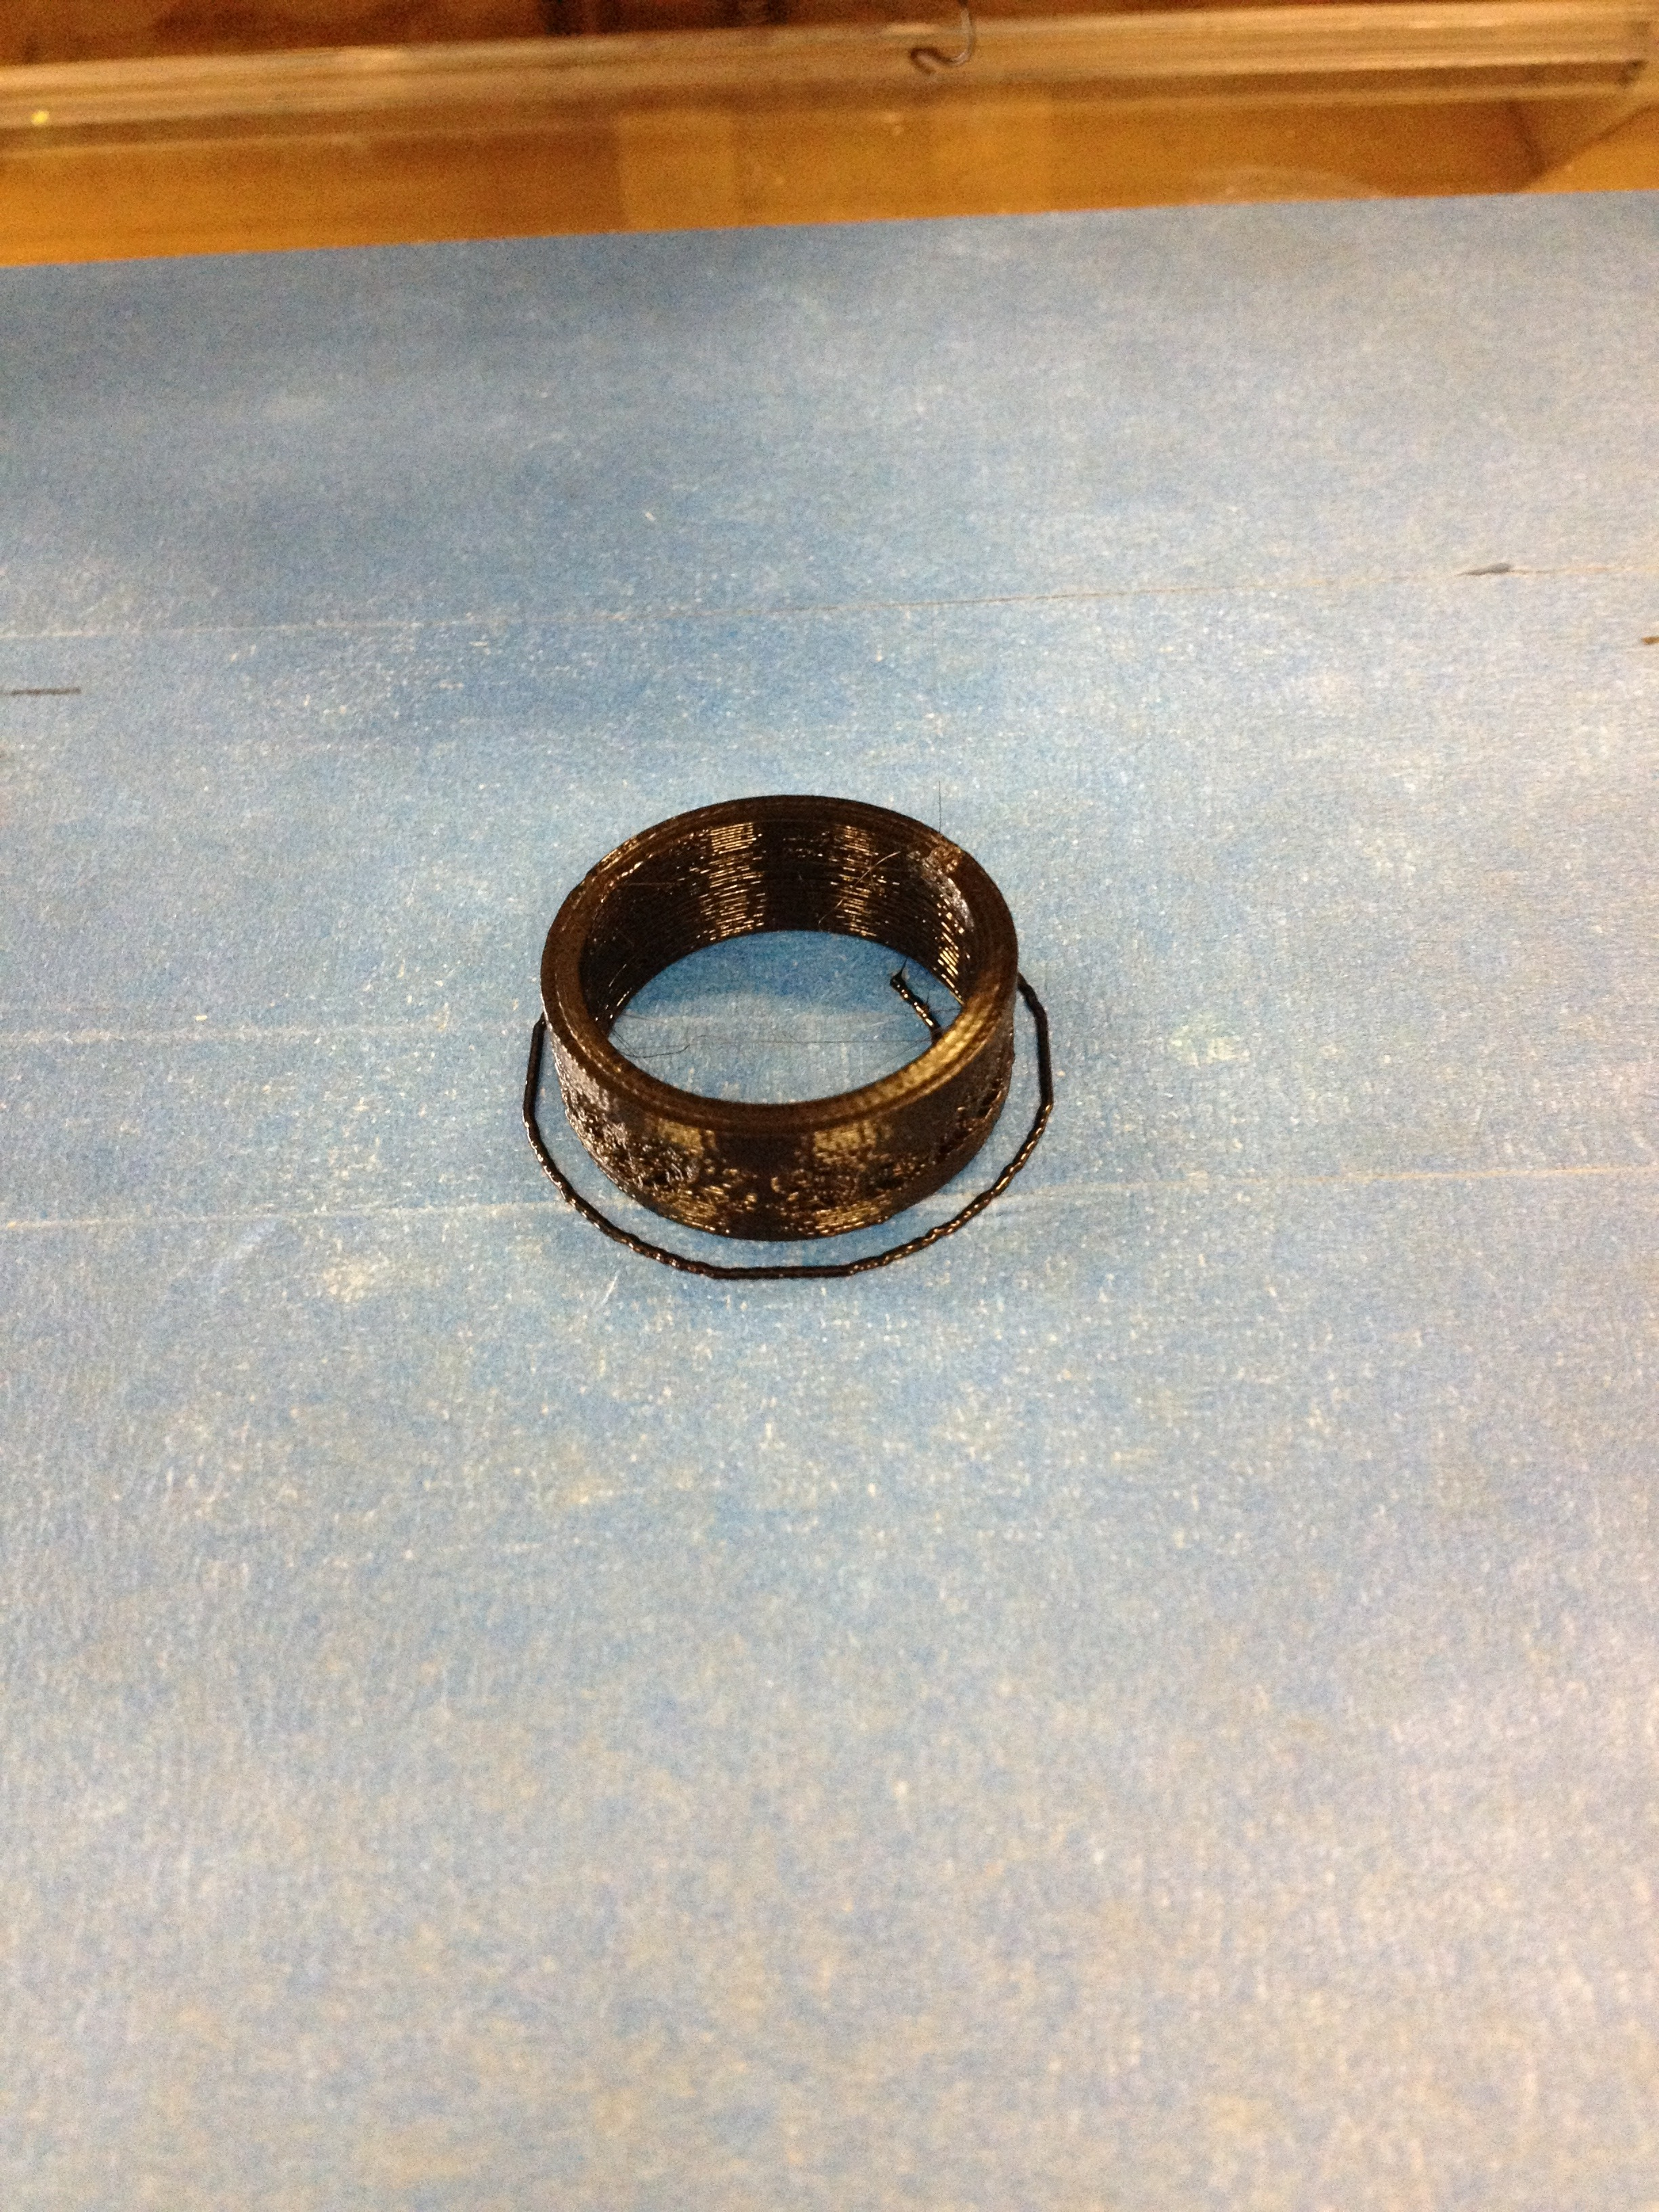 Picture of Final Print of Ring With Fancy Text - a Bit Hard to Read at This Size